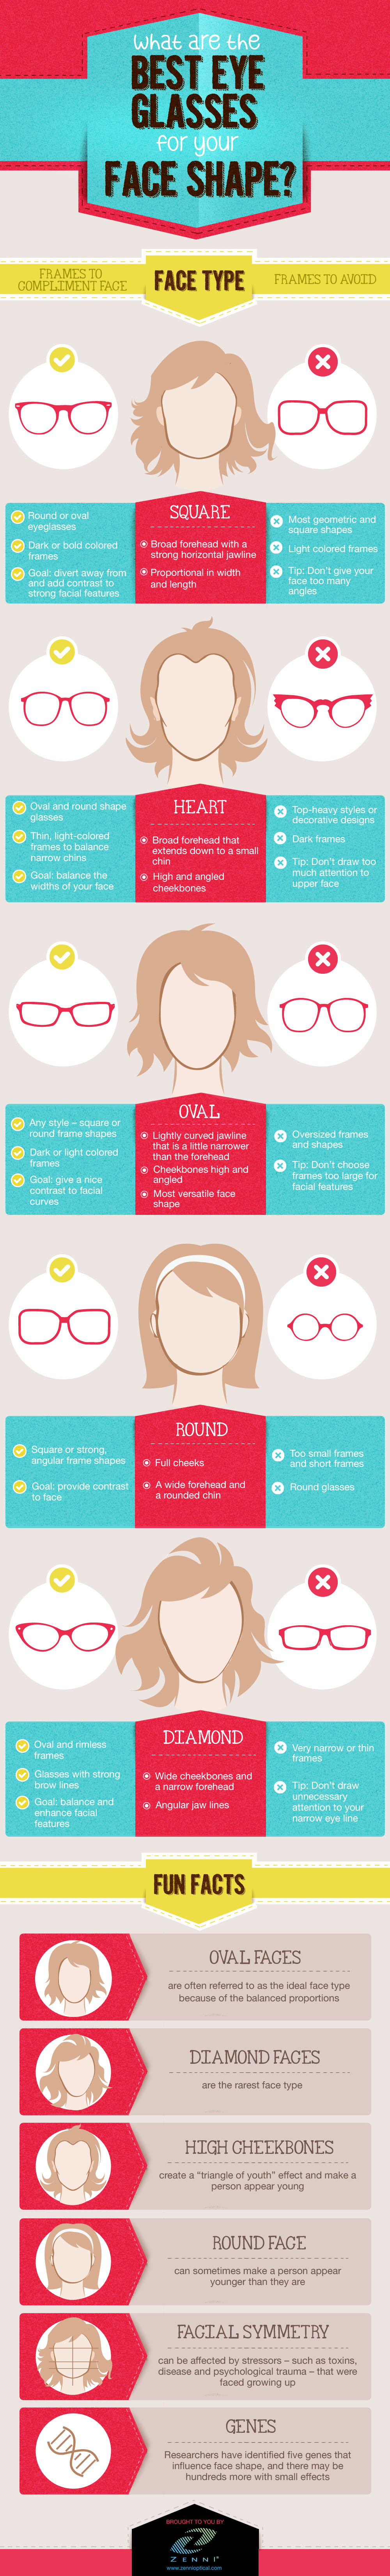 Infographic: What Are The Best Eyeglasses For Your Face Shape?